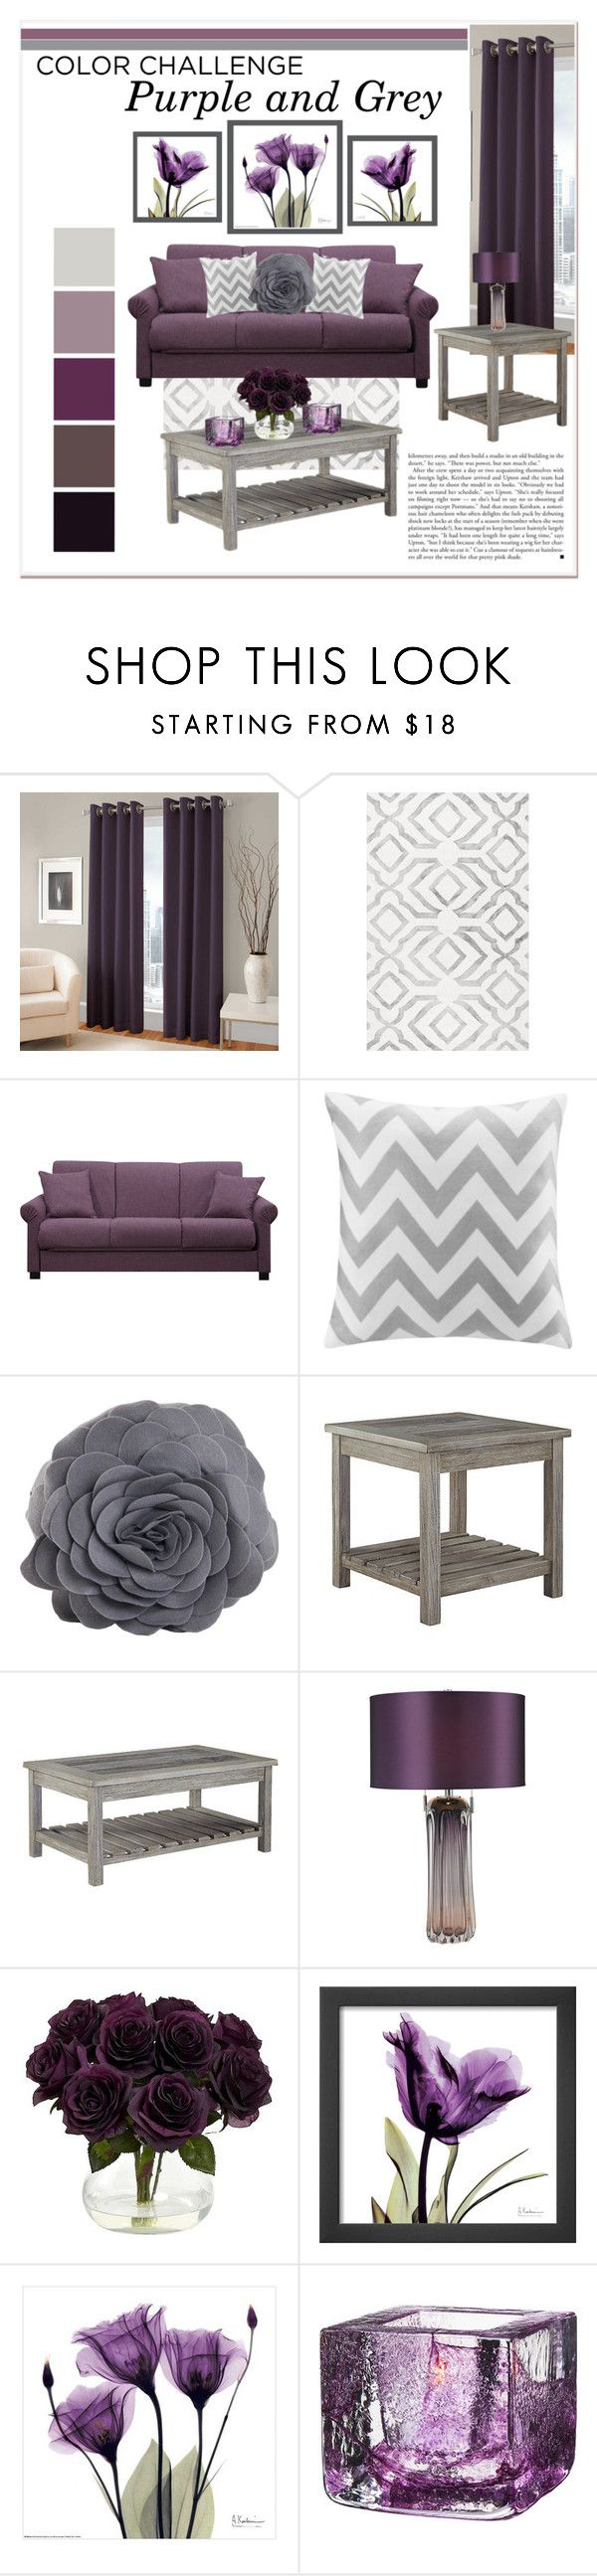 Purple and Grey Living Room | Grey living rooms, Interior decorating ...